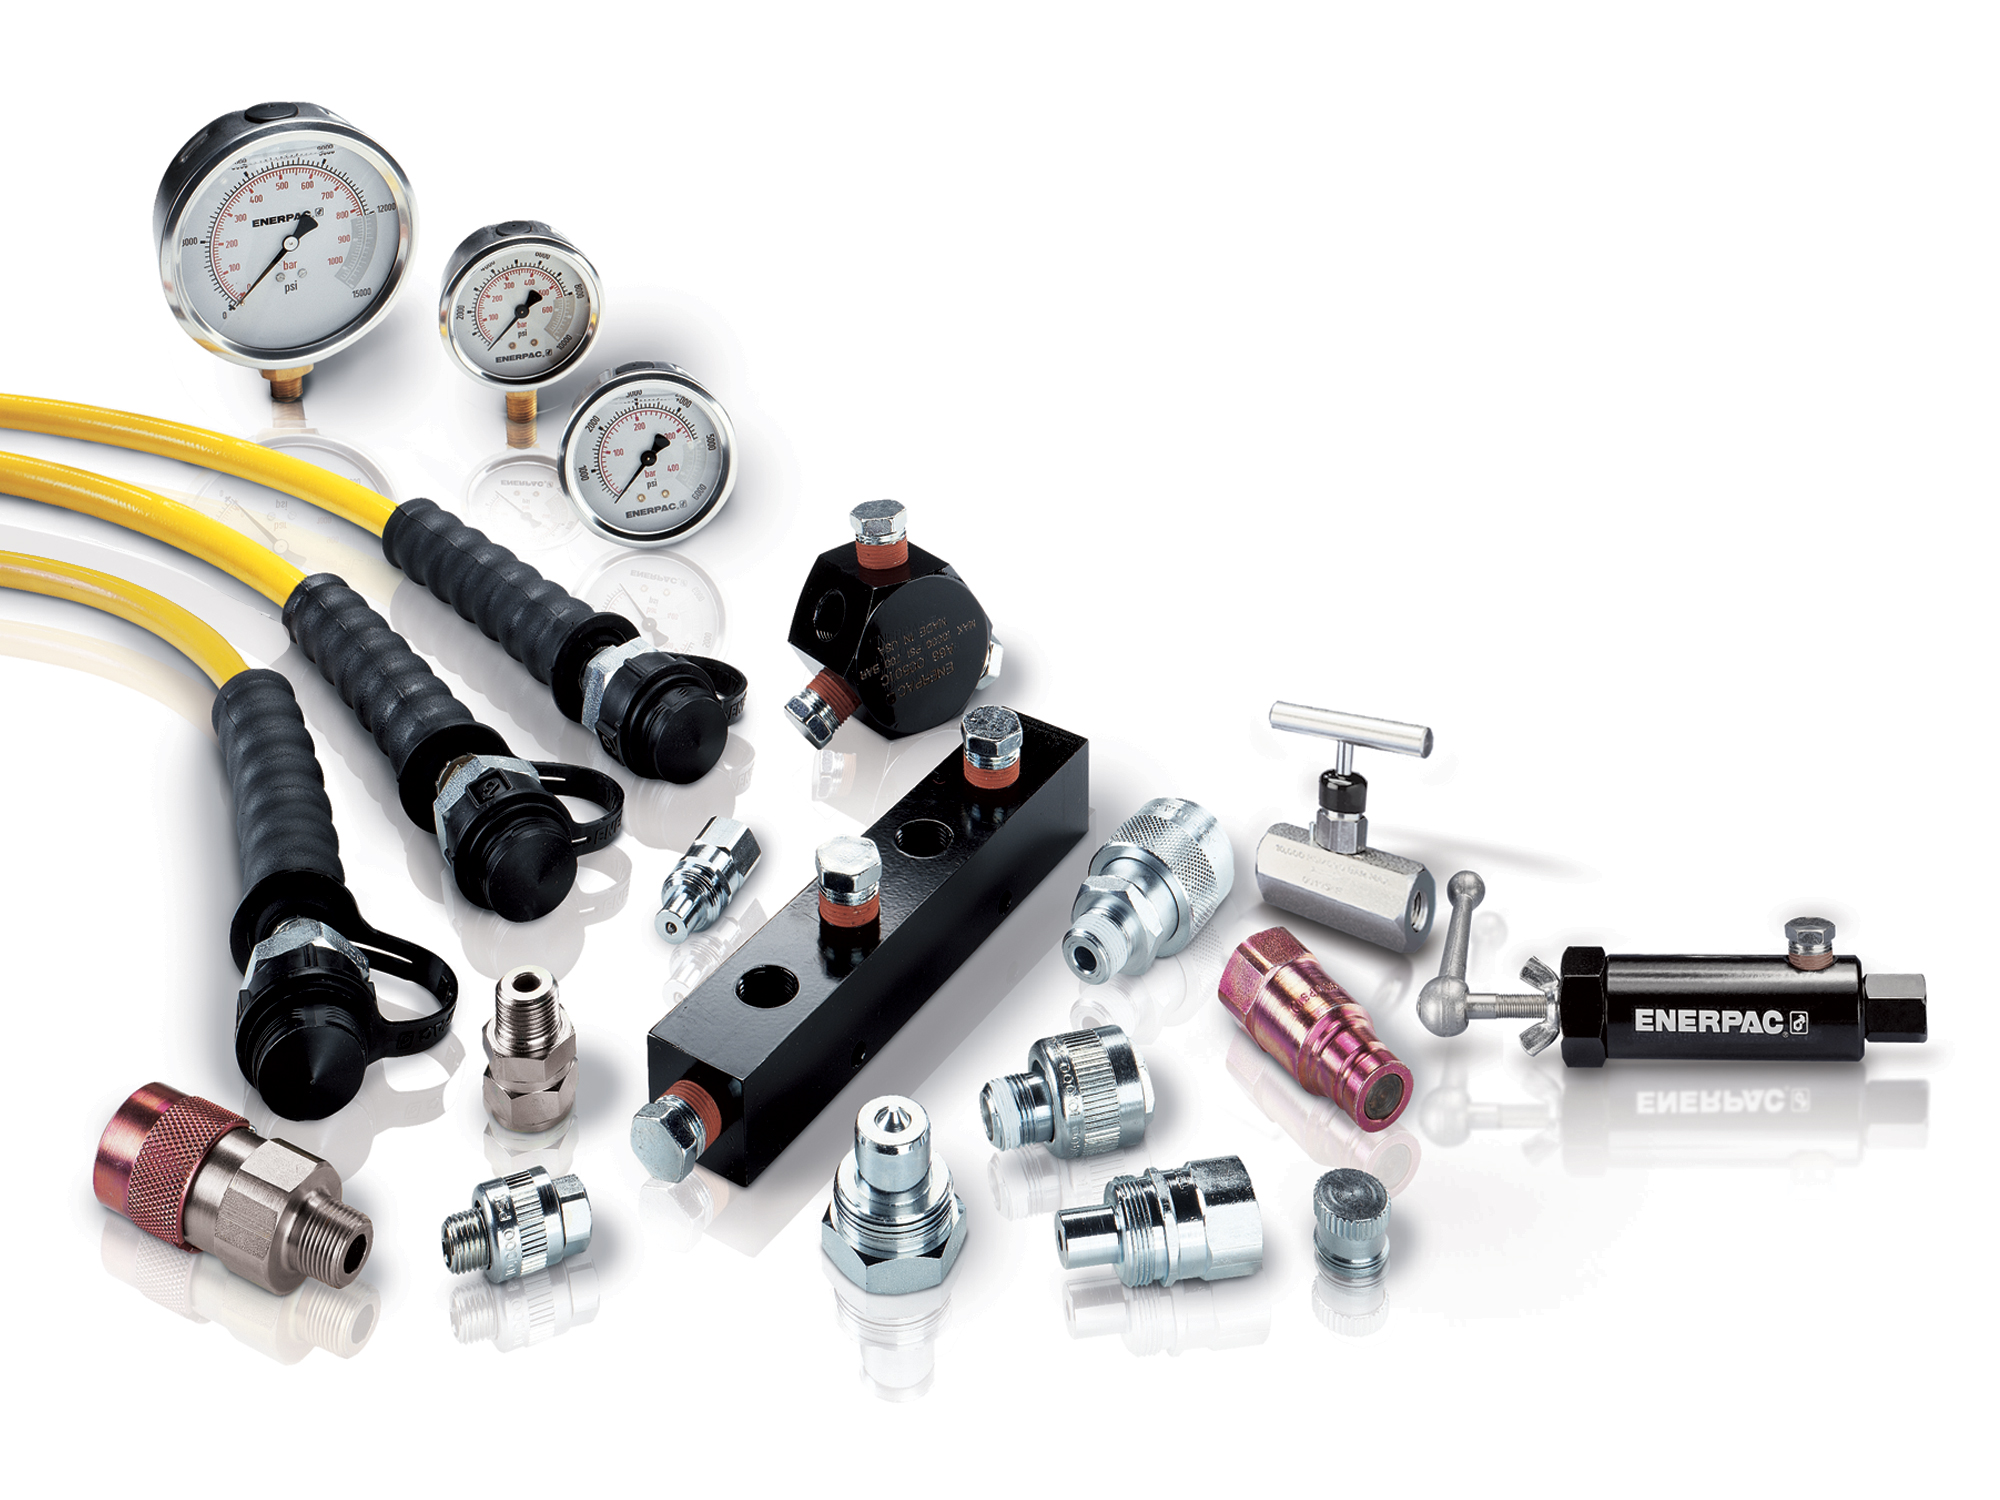 Enerpac System Components